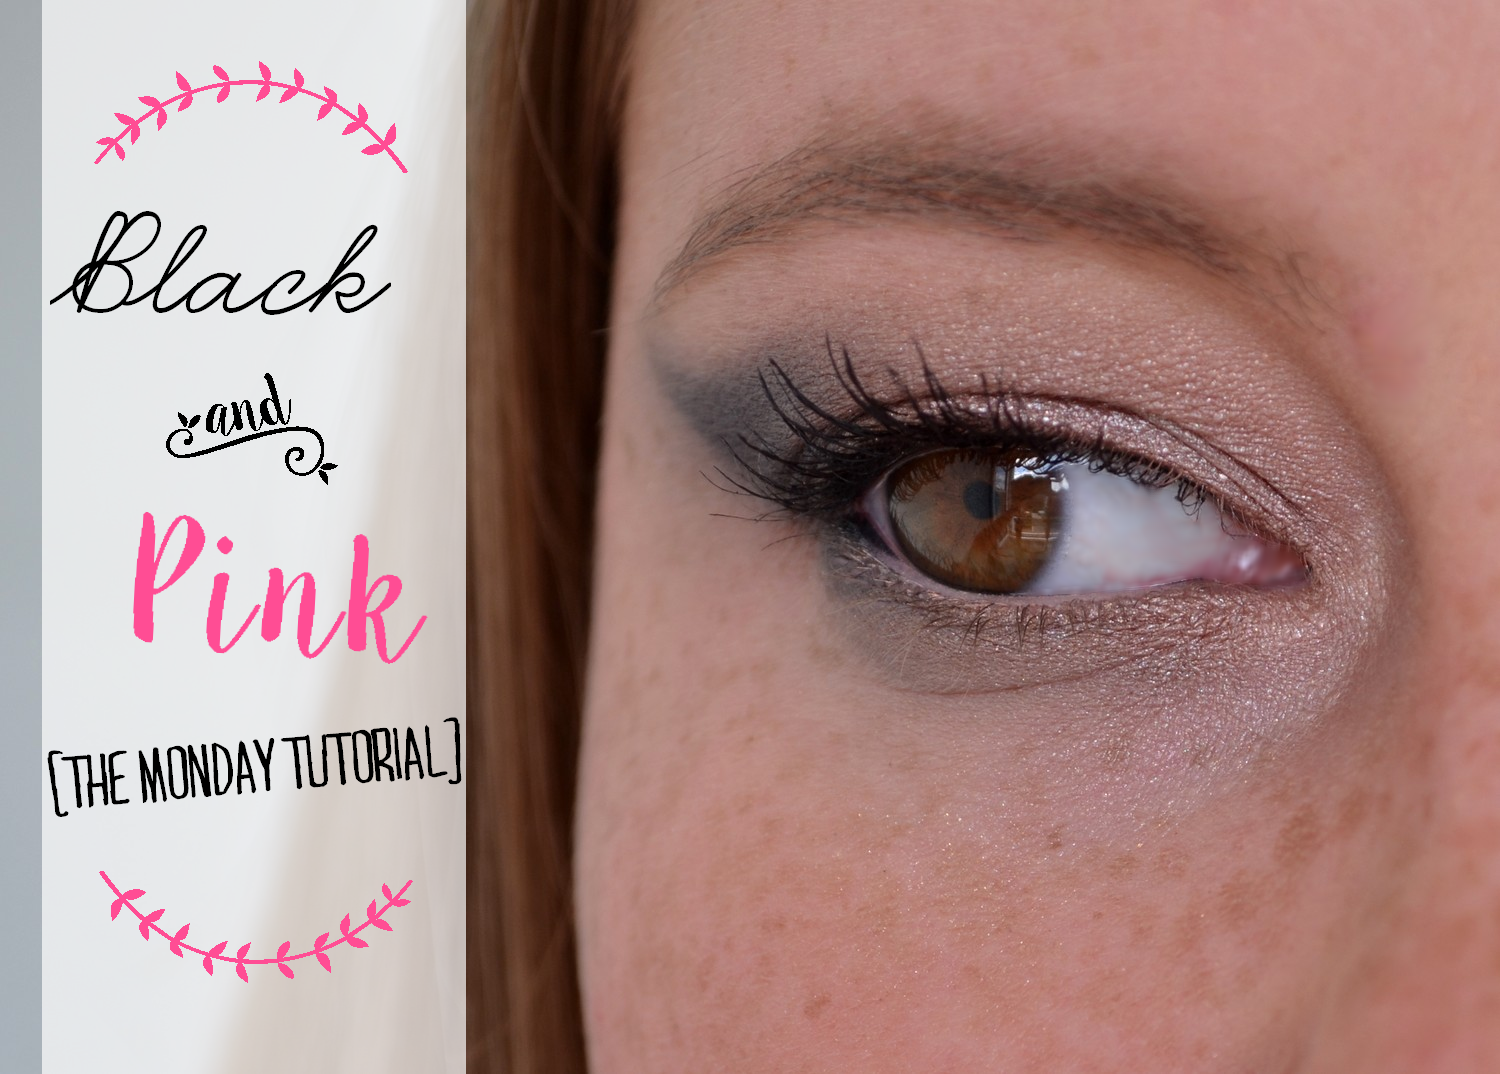 http://www.dreamingsmoothly.com/2015/09/monday-tutorial-black-pink.html